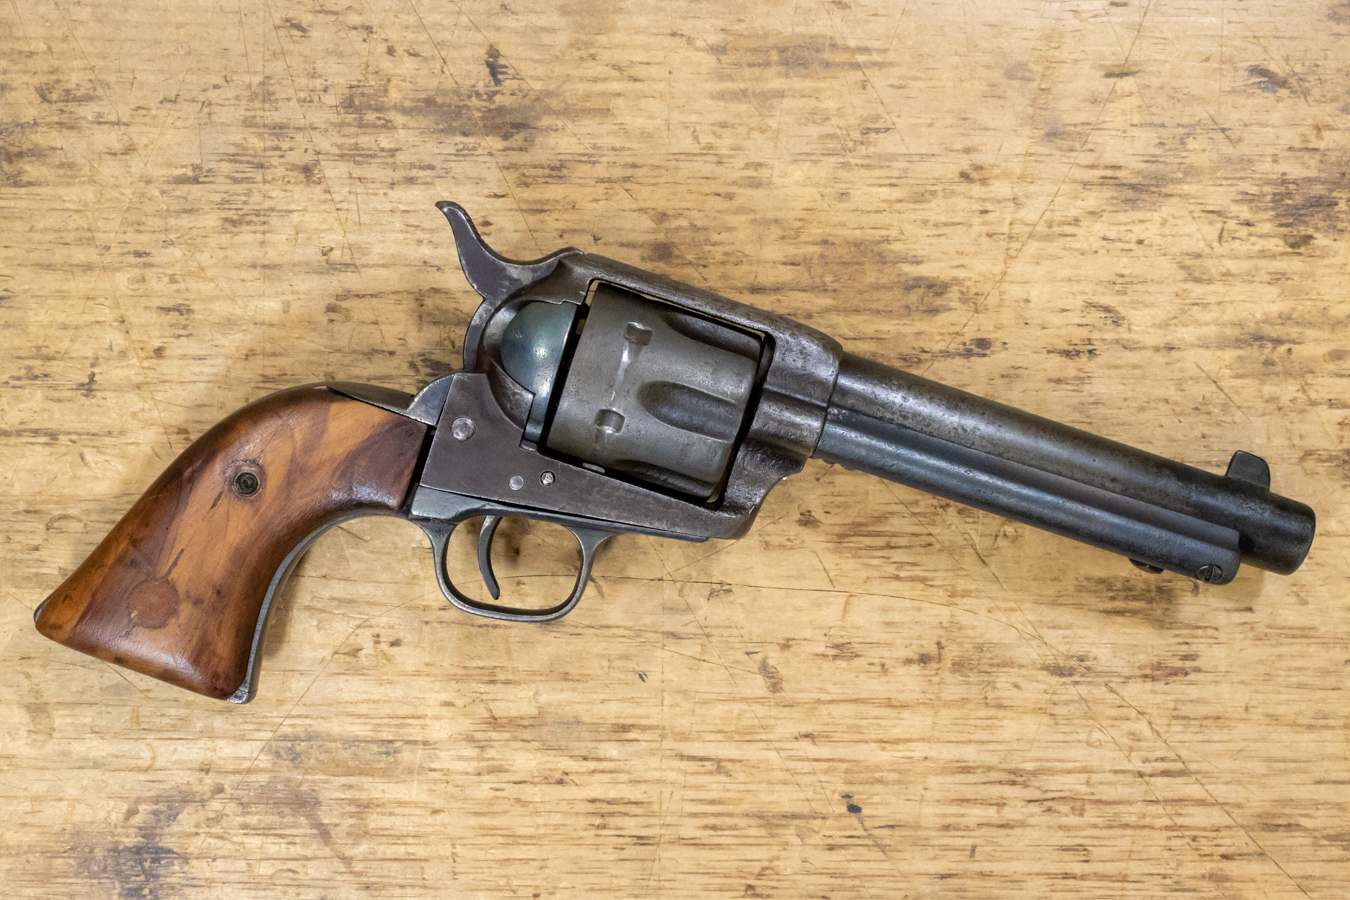 45 COLT SINGLE-ACTION ARMY